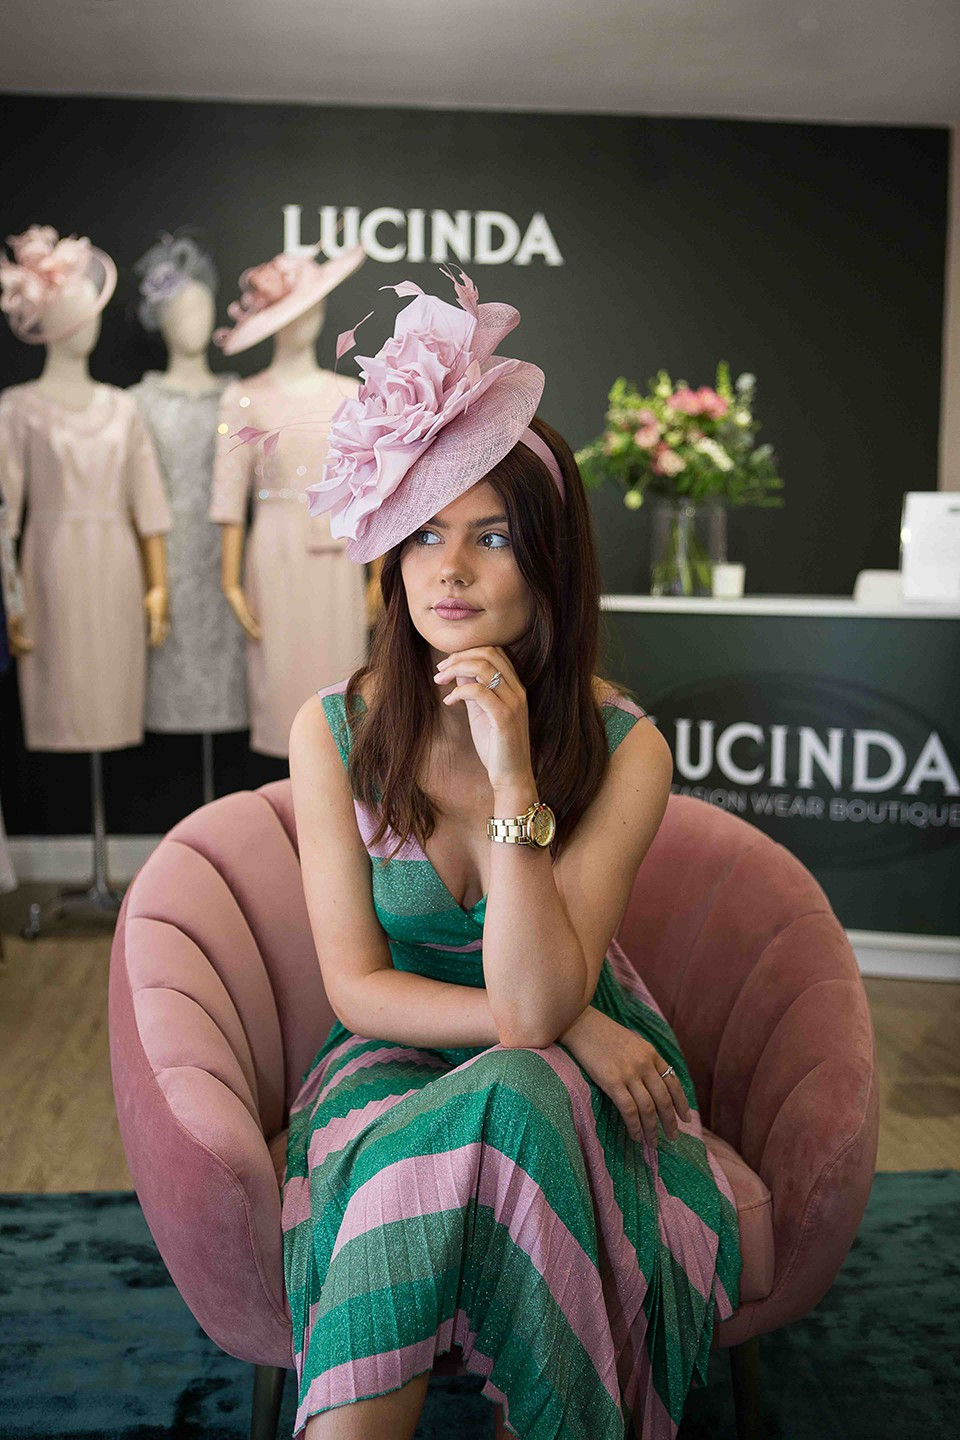 Lucinda Boutique in Ampthill